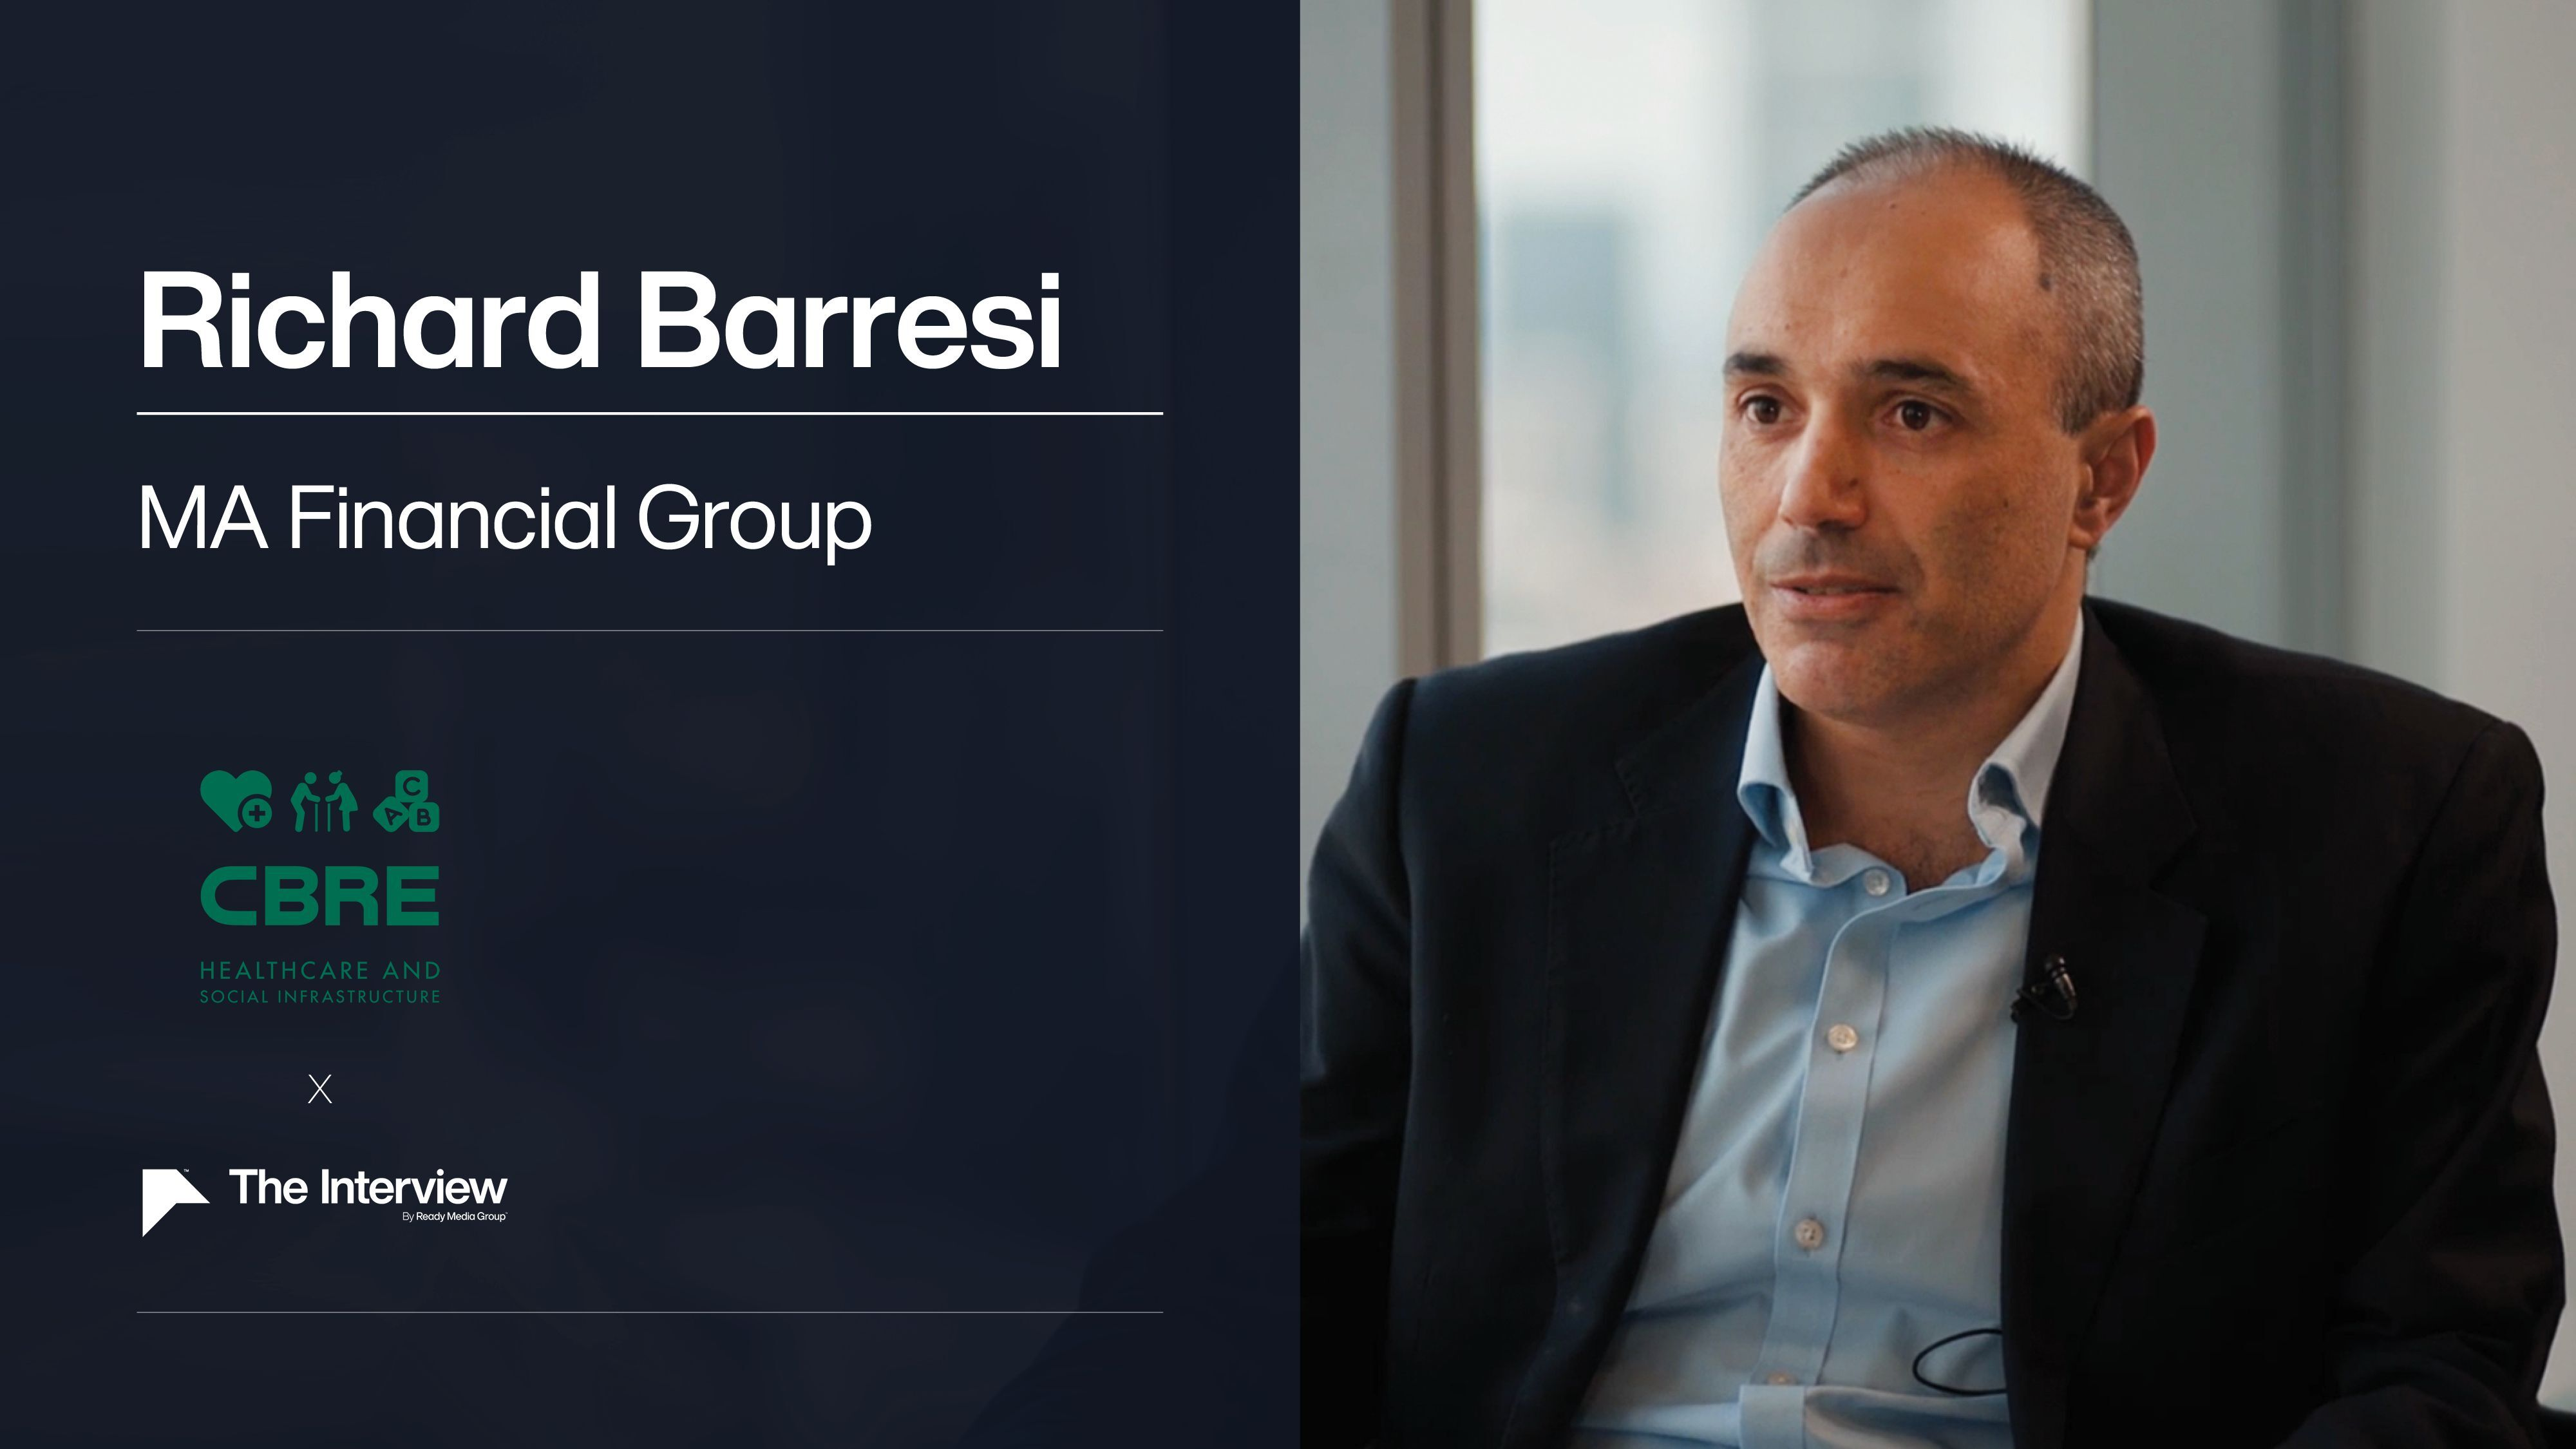 The Interview x CBRE (Healthcare & Social Infrastructure) - Richard Barresi, MA Financial Group